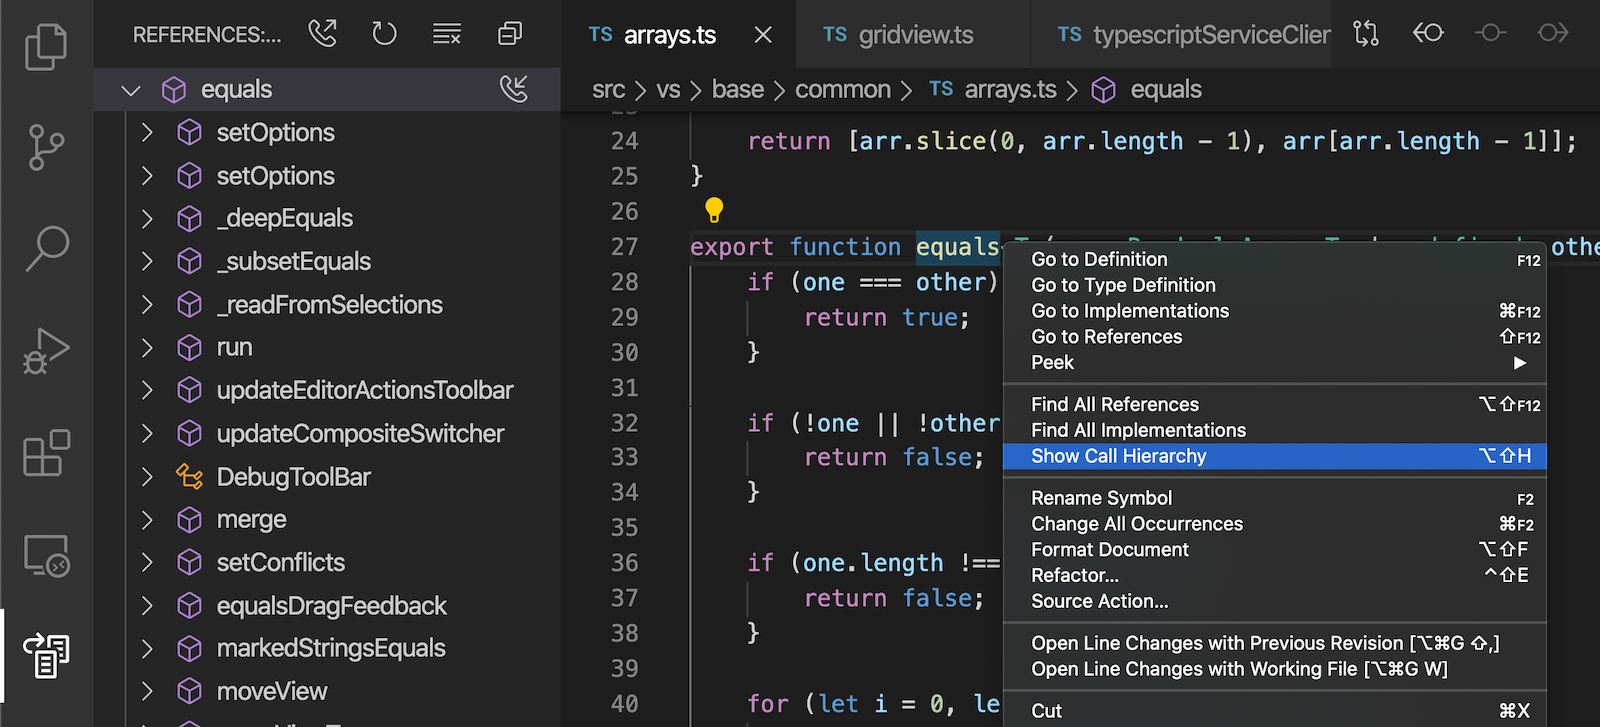 Viewing incoming calls using call hierarchy in a TypeScript file